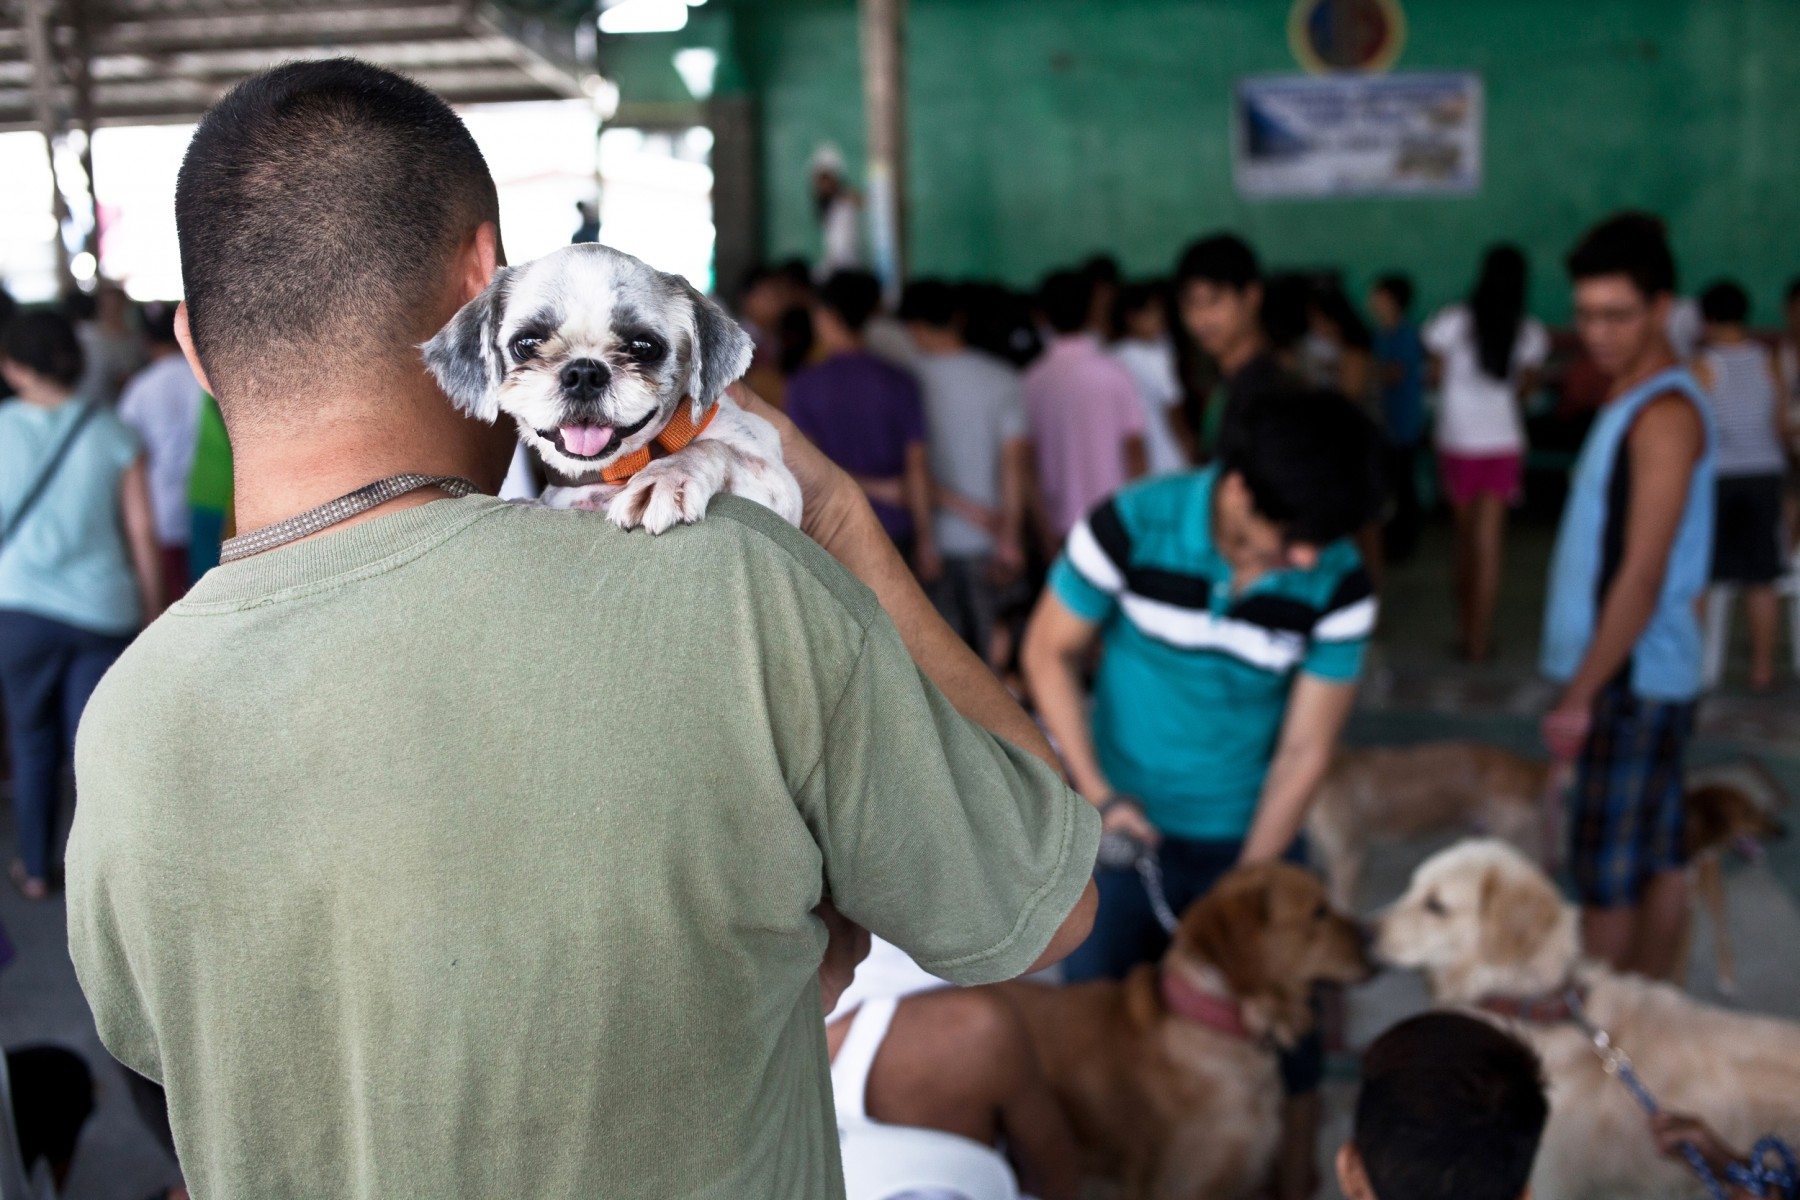 Owner holding his dog at a rabies vaccination drive in the Philippines - World Animal Protection